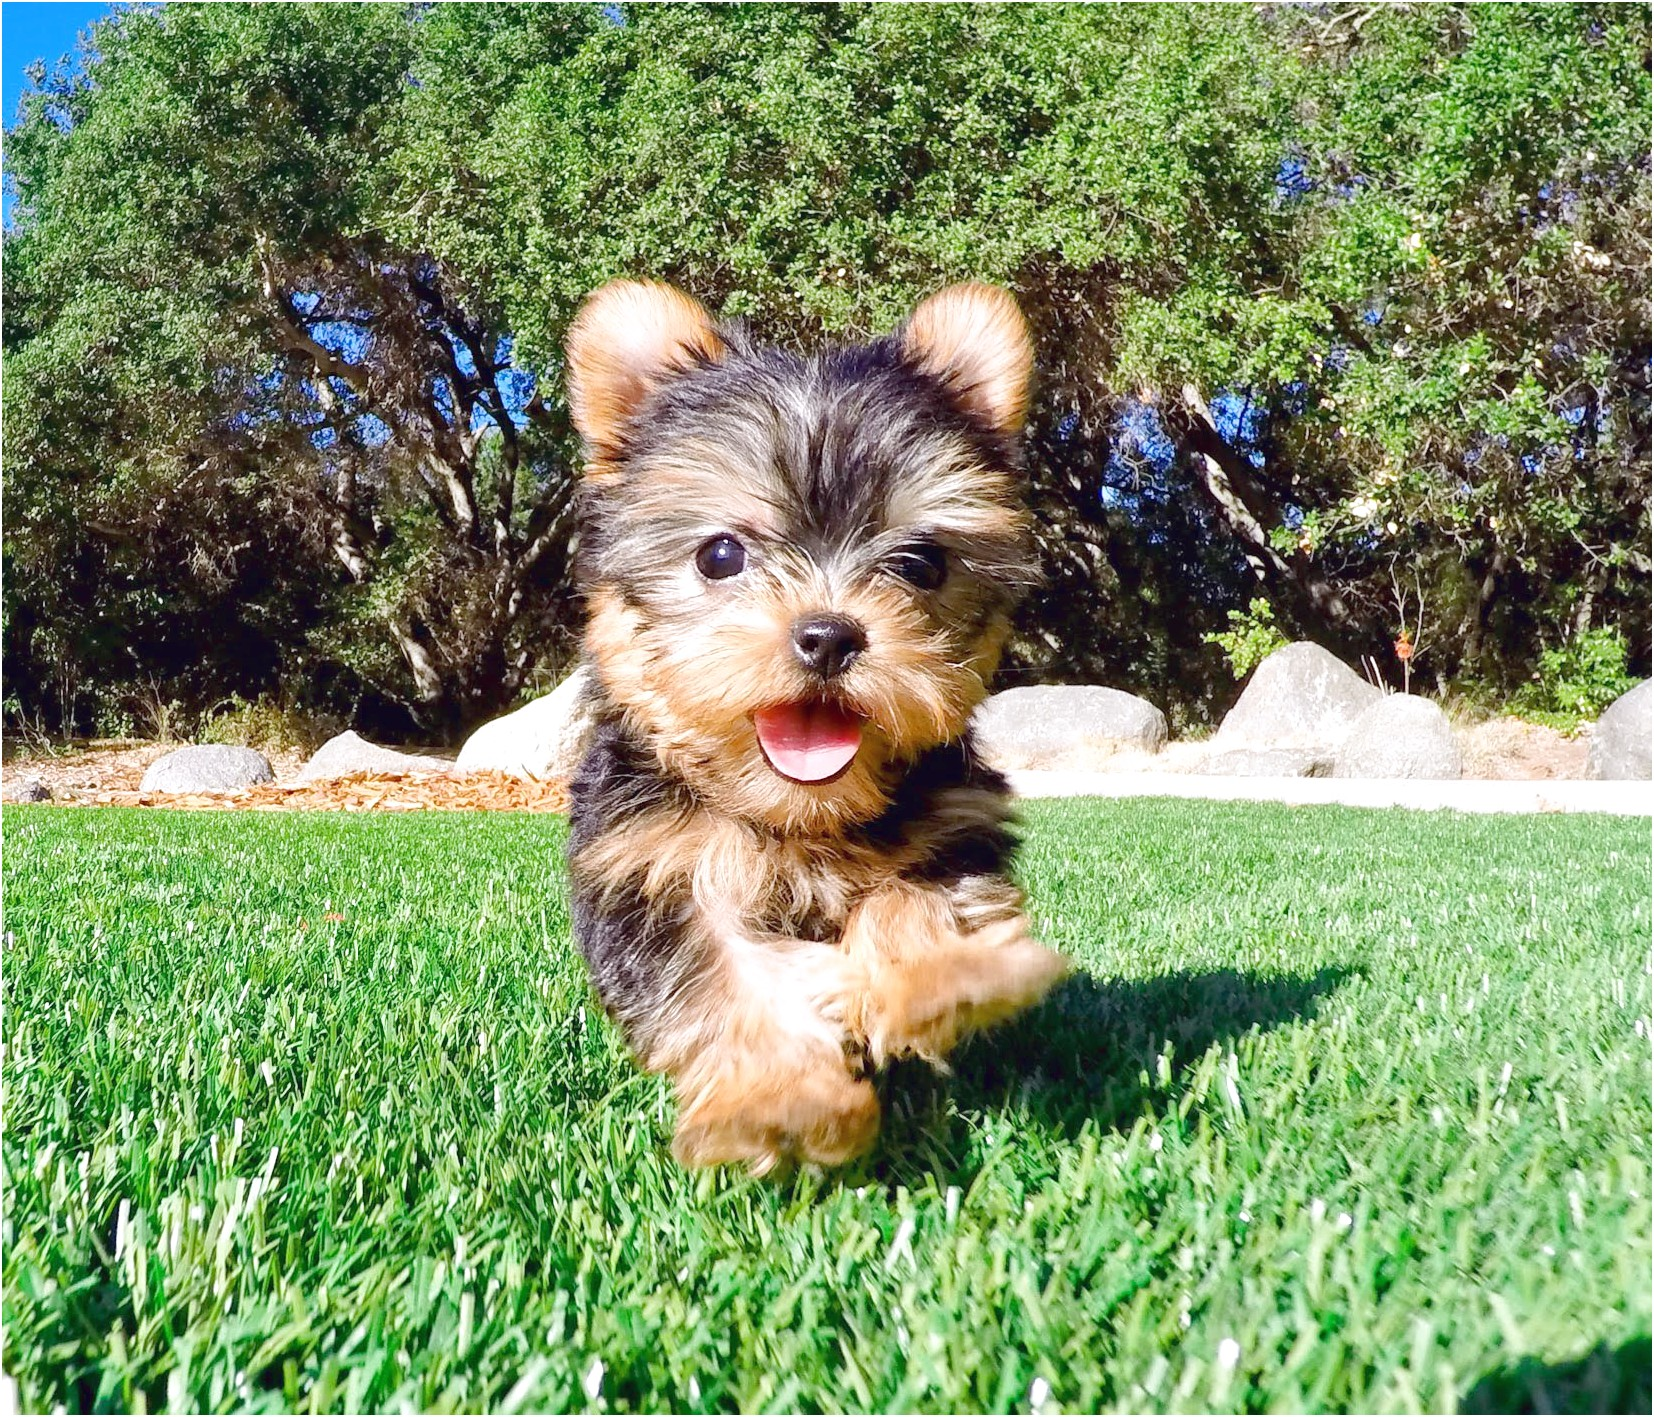 yorkshire terrier puppies images